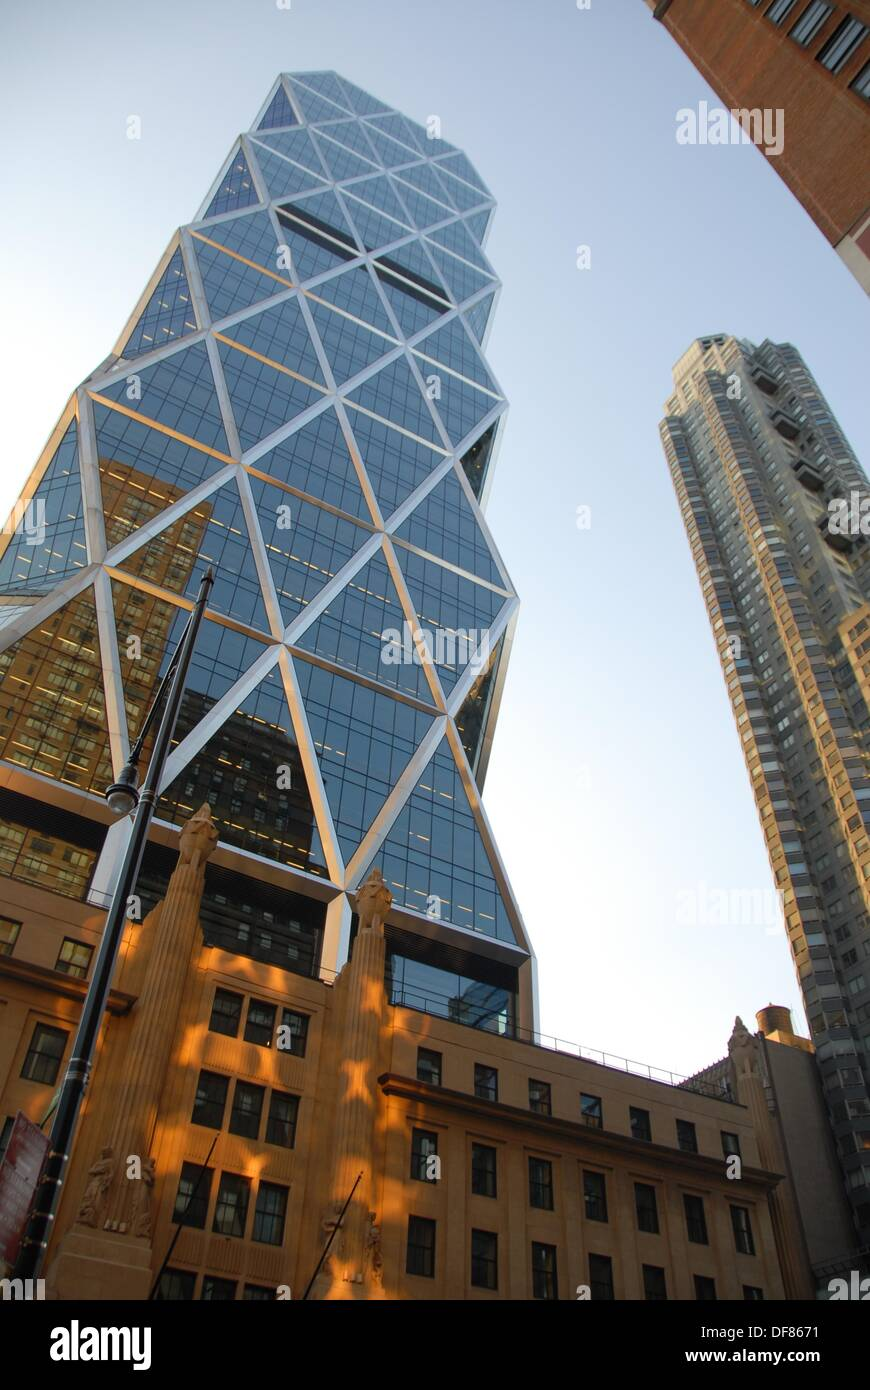 Norman Foster's Hearst Tower, built on top of the 1928 Hearst building in 2006., Northwest Manhattan, New York, New York. USA - Stock Image